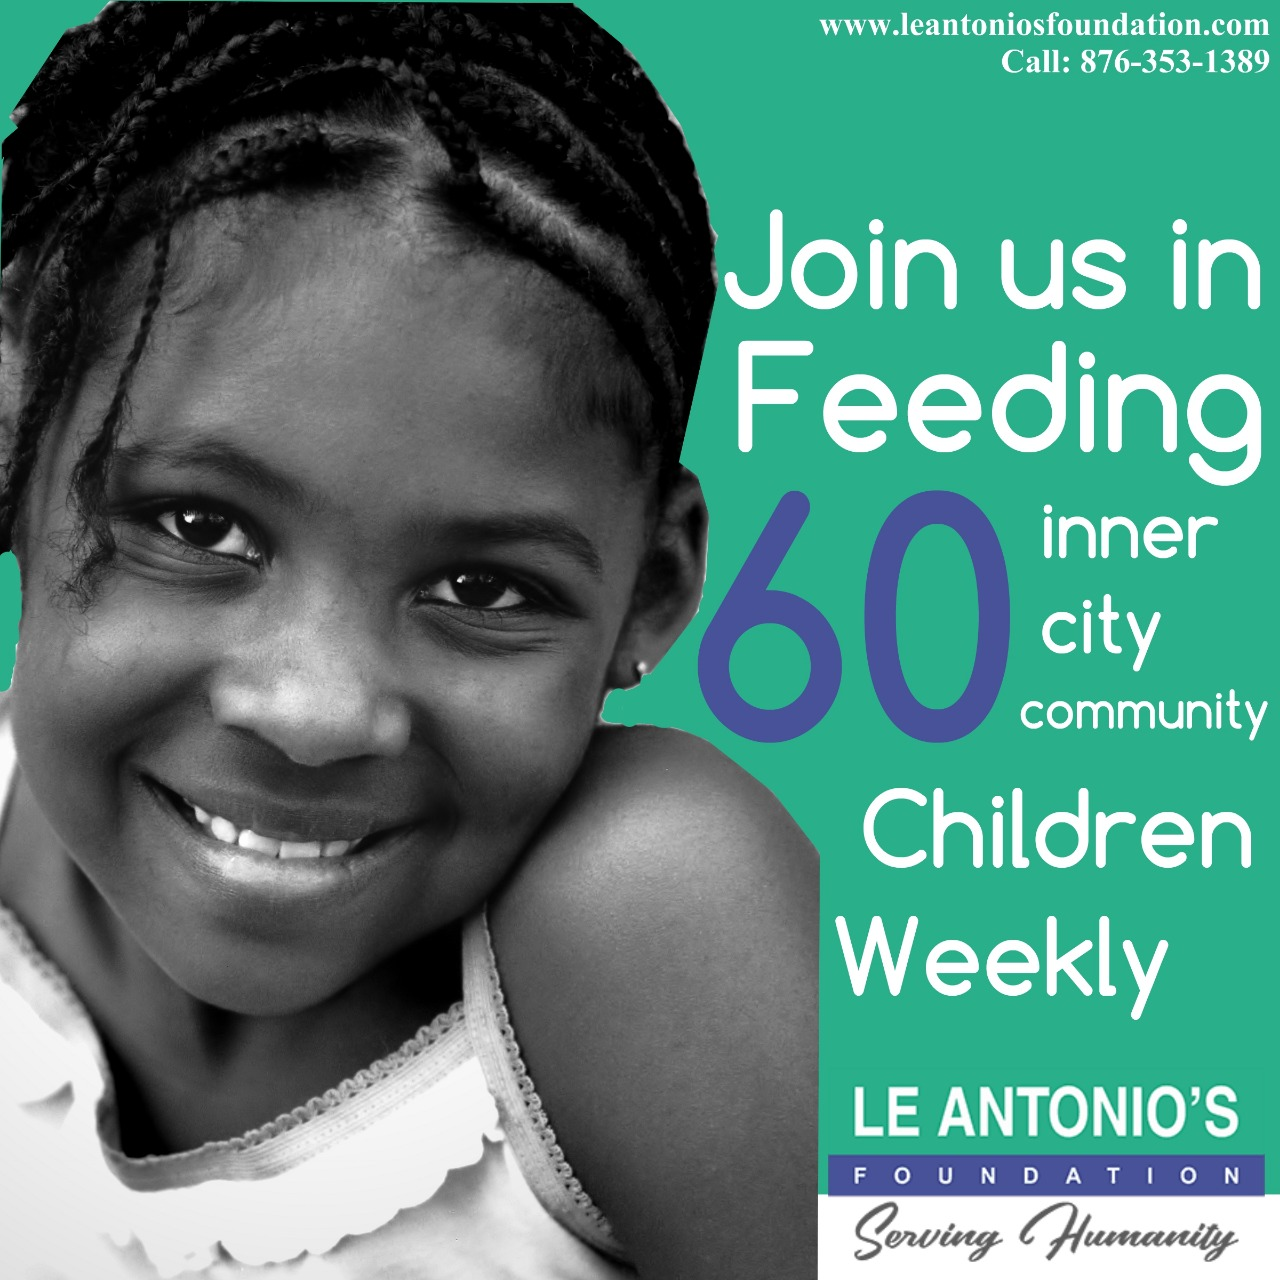 Le Antonio's Foundation Feeding Programme